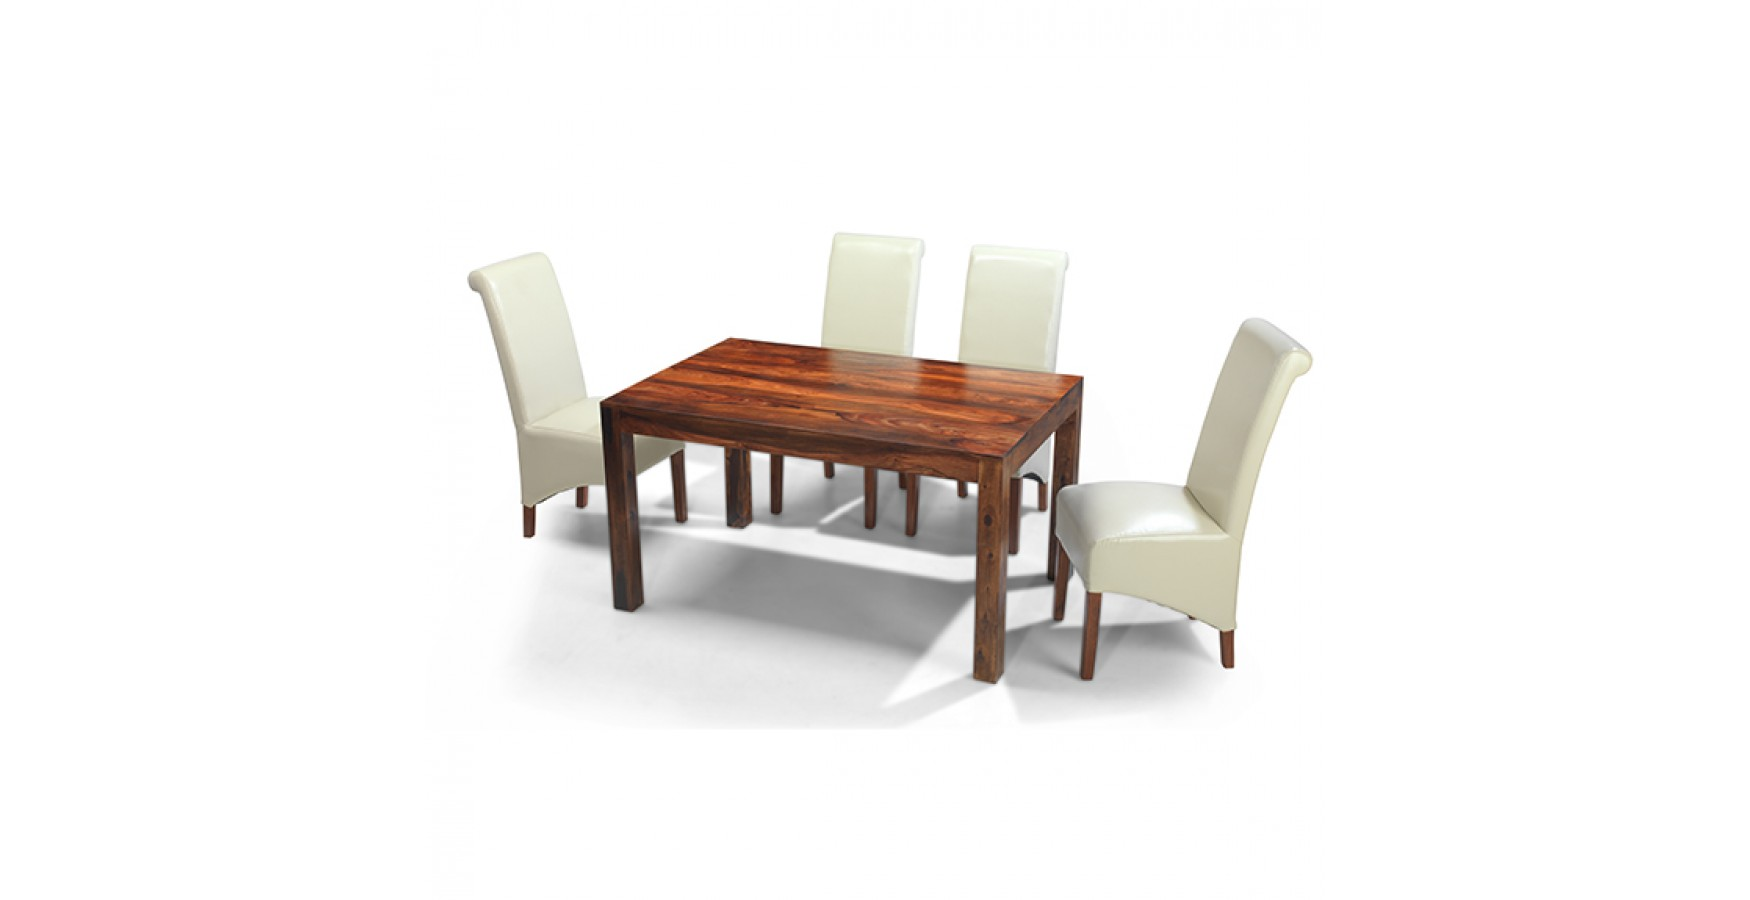 Cuba sheesham 140 cm dining table and 4 chairs lifestyle for Sheesham dining table